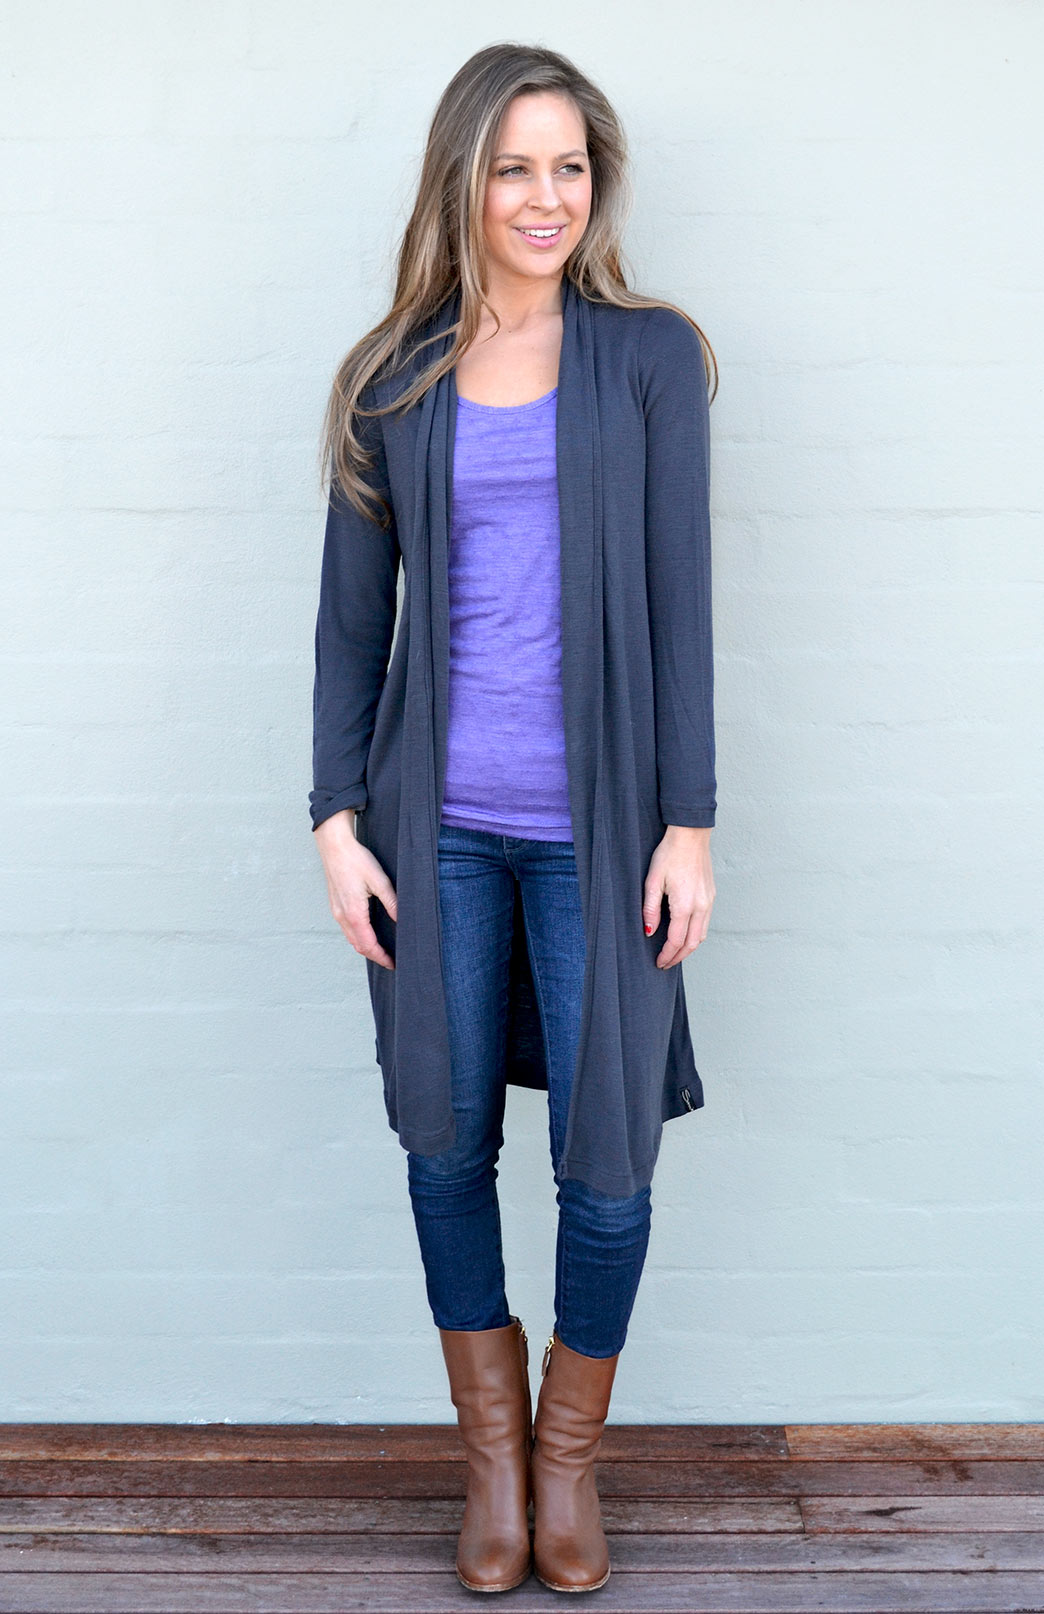 Long Drape Cardigan - Women's Steel Grey Lightweight Merino Wool Long Drape - Smitten Merino Tasmania Australia